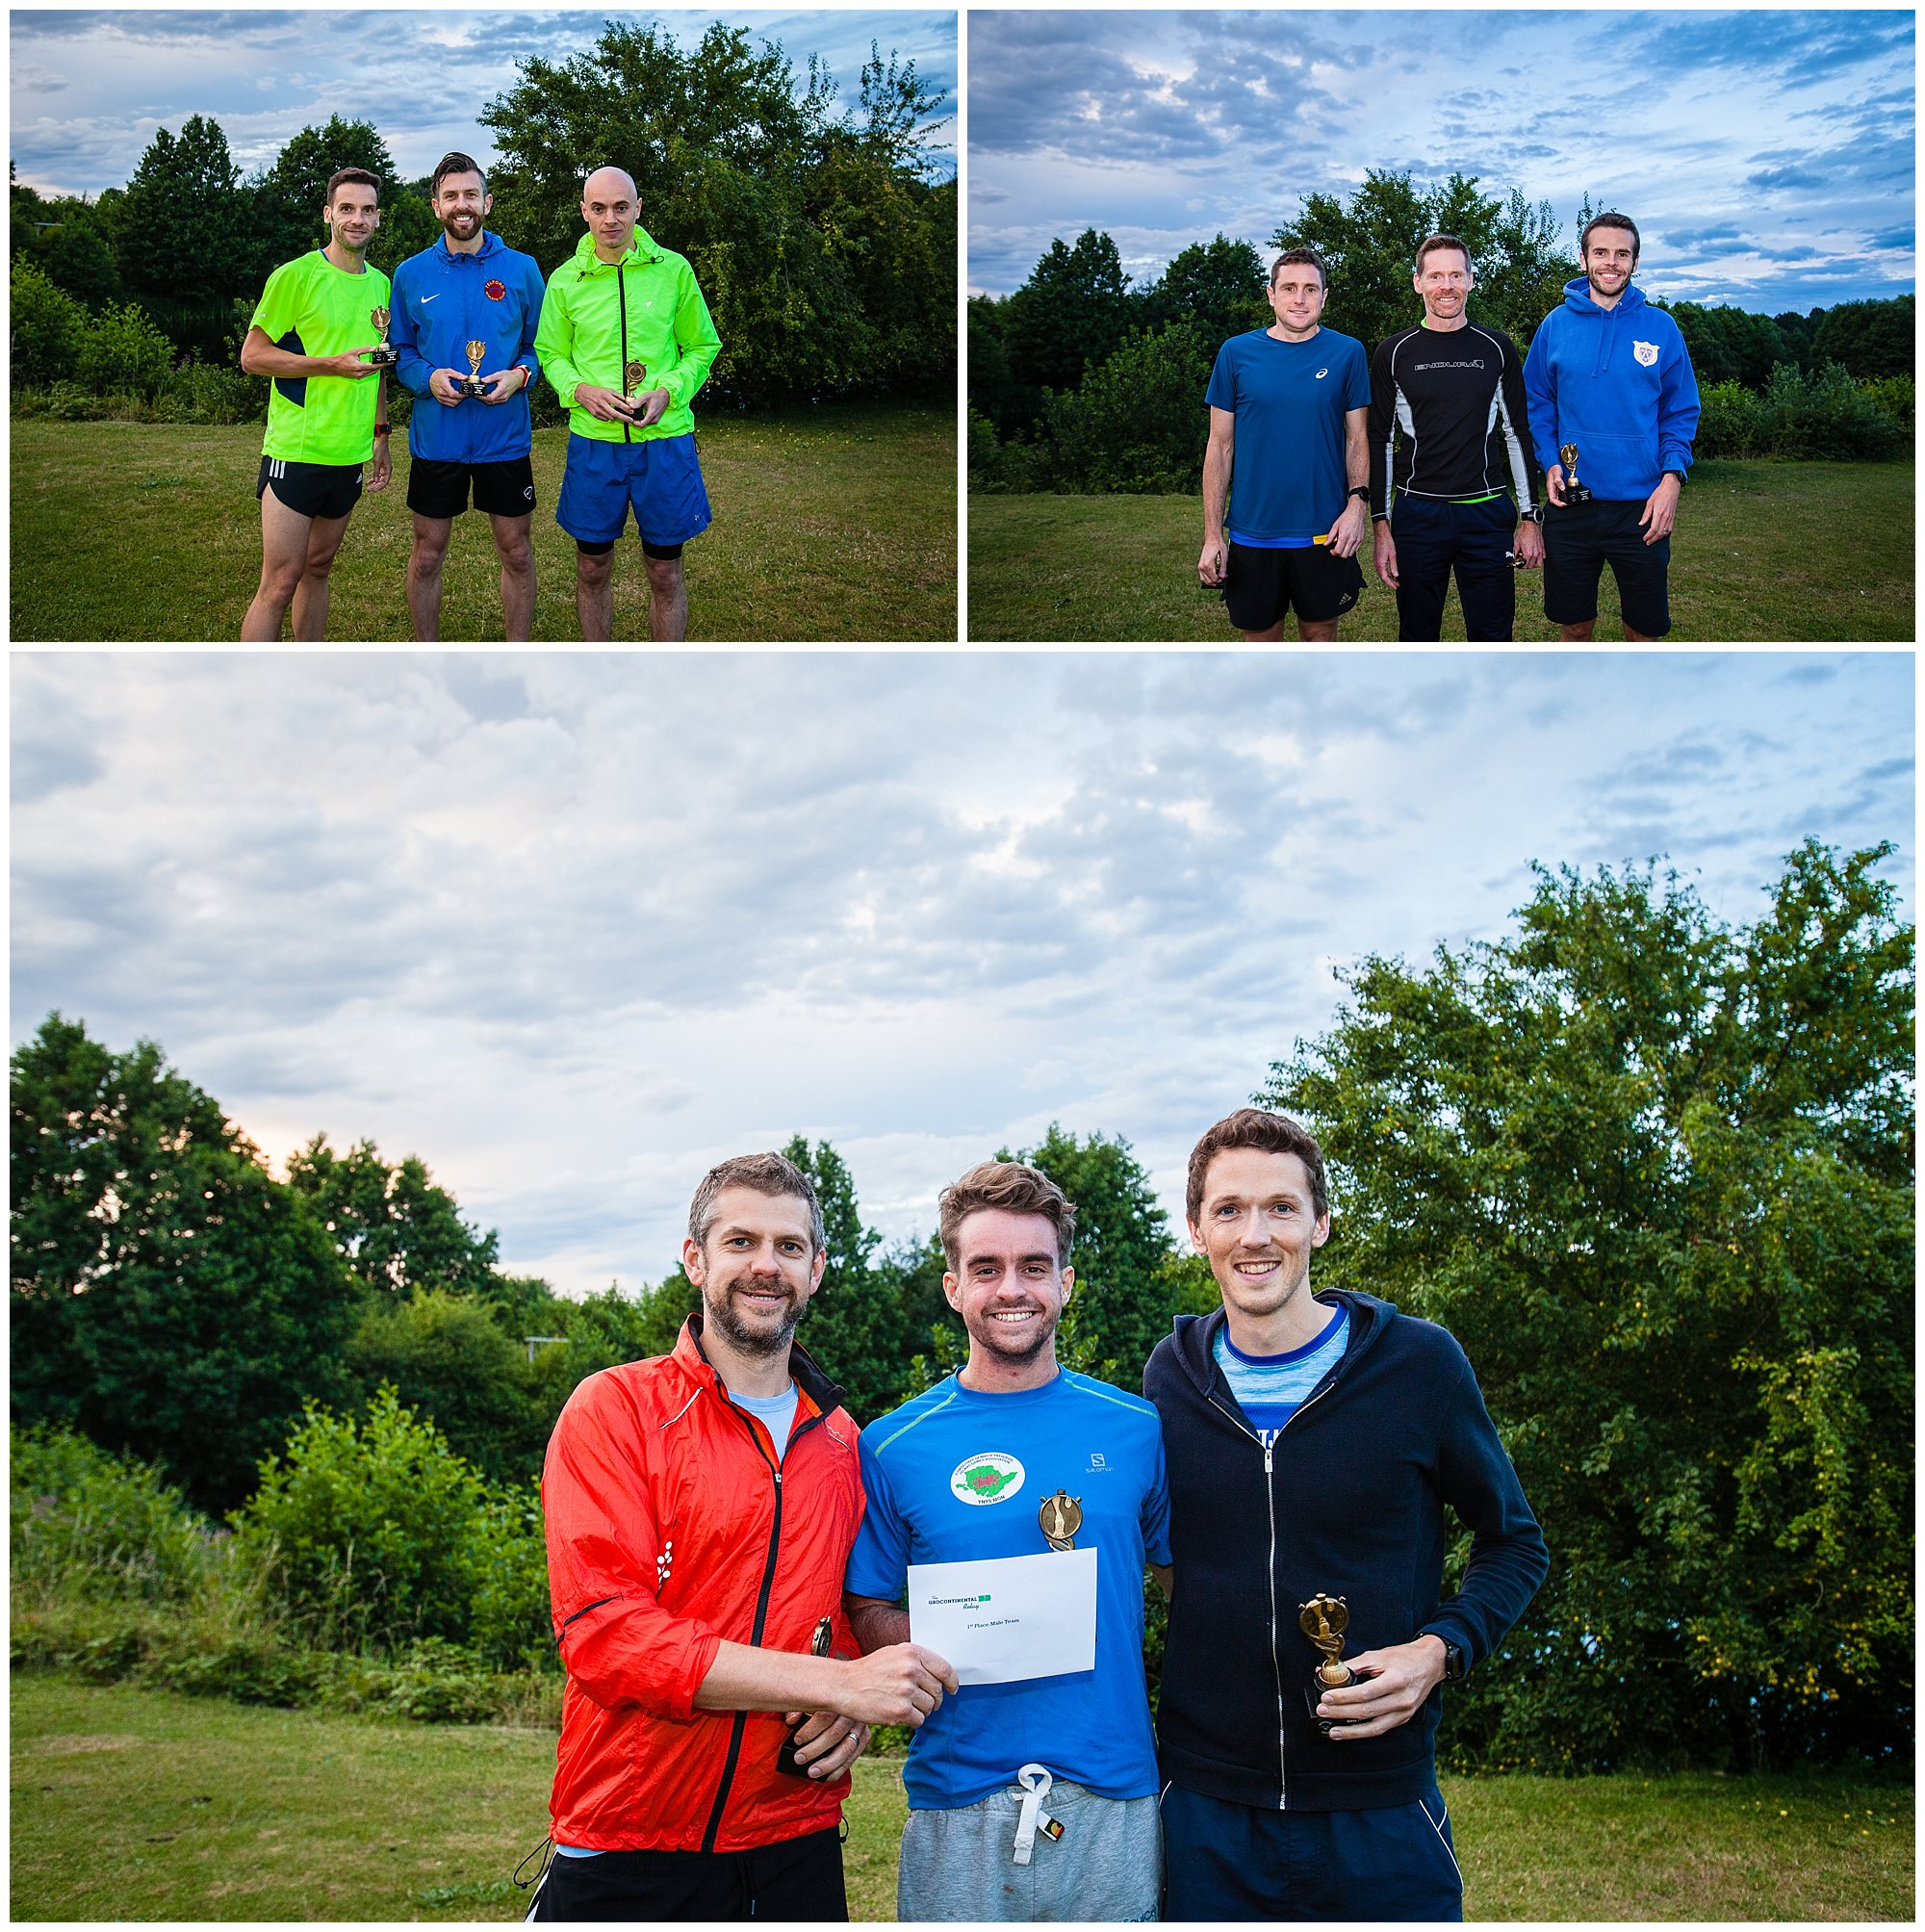 winners of categories at aldeford lake relay event